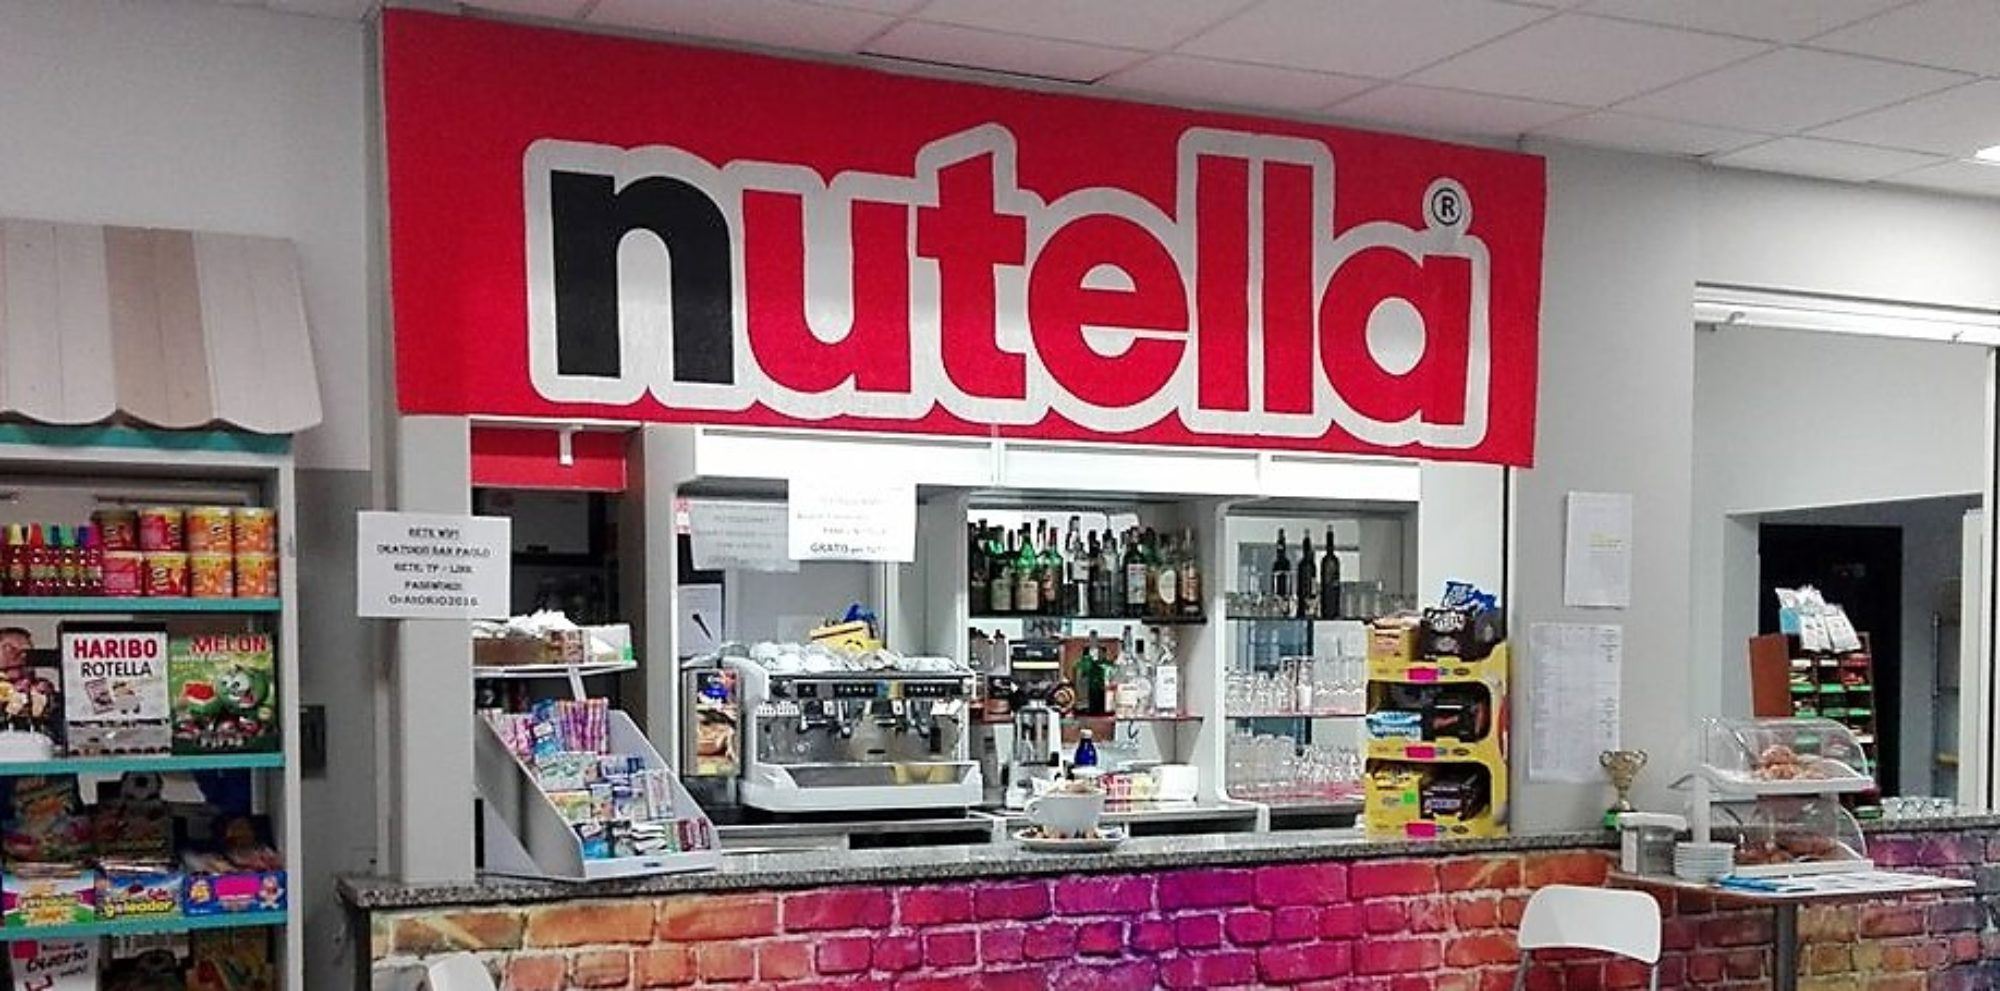 Nutellamania